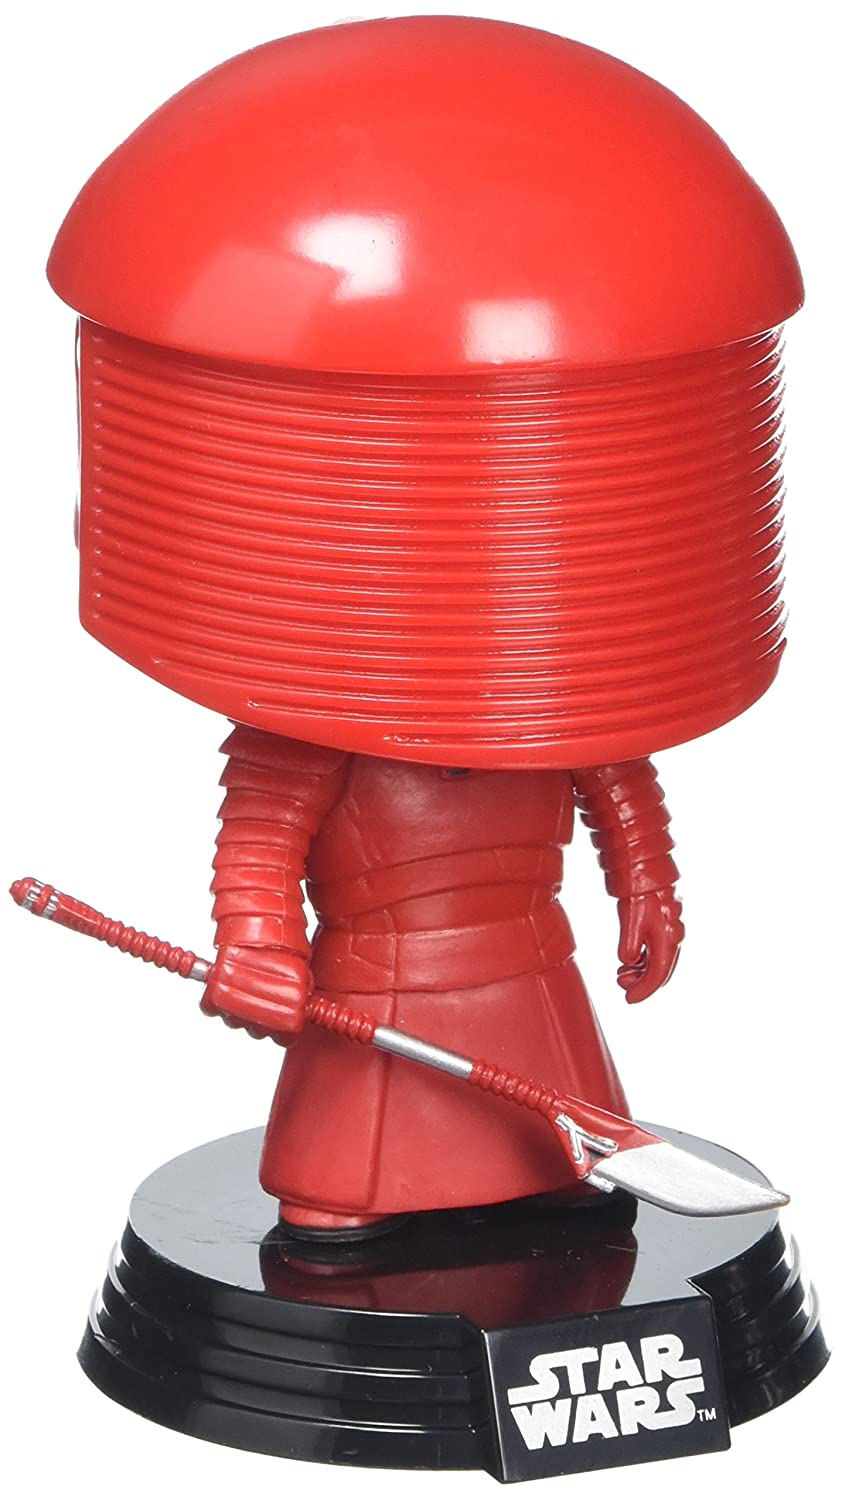 Funko POP! Star Wars: The Last Jedi - Praetorian Guard